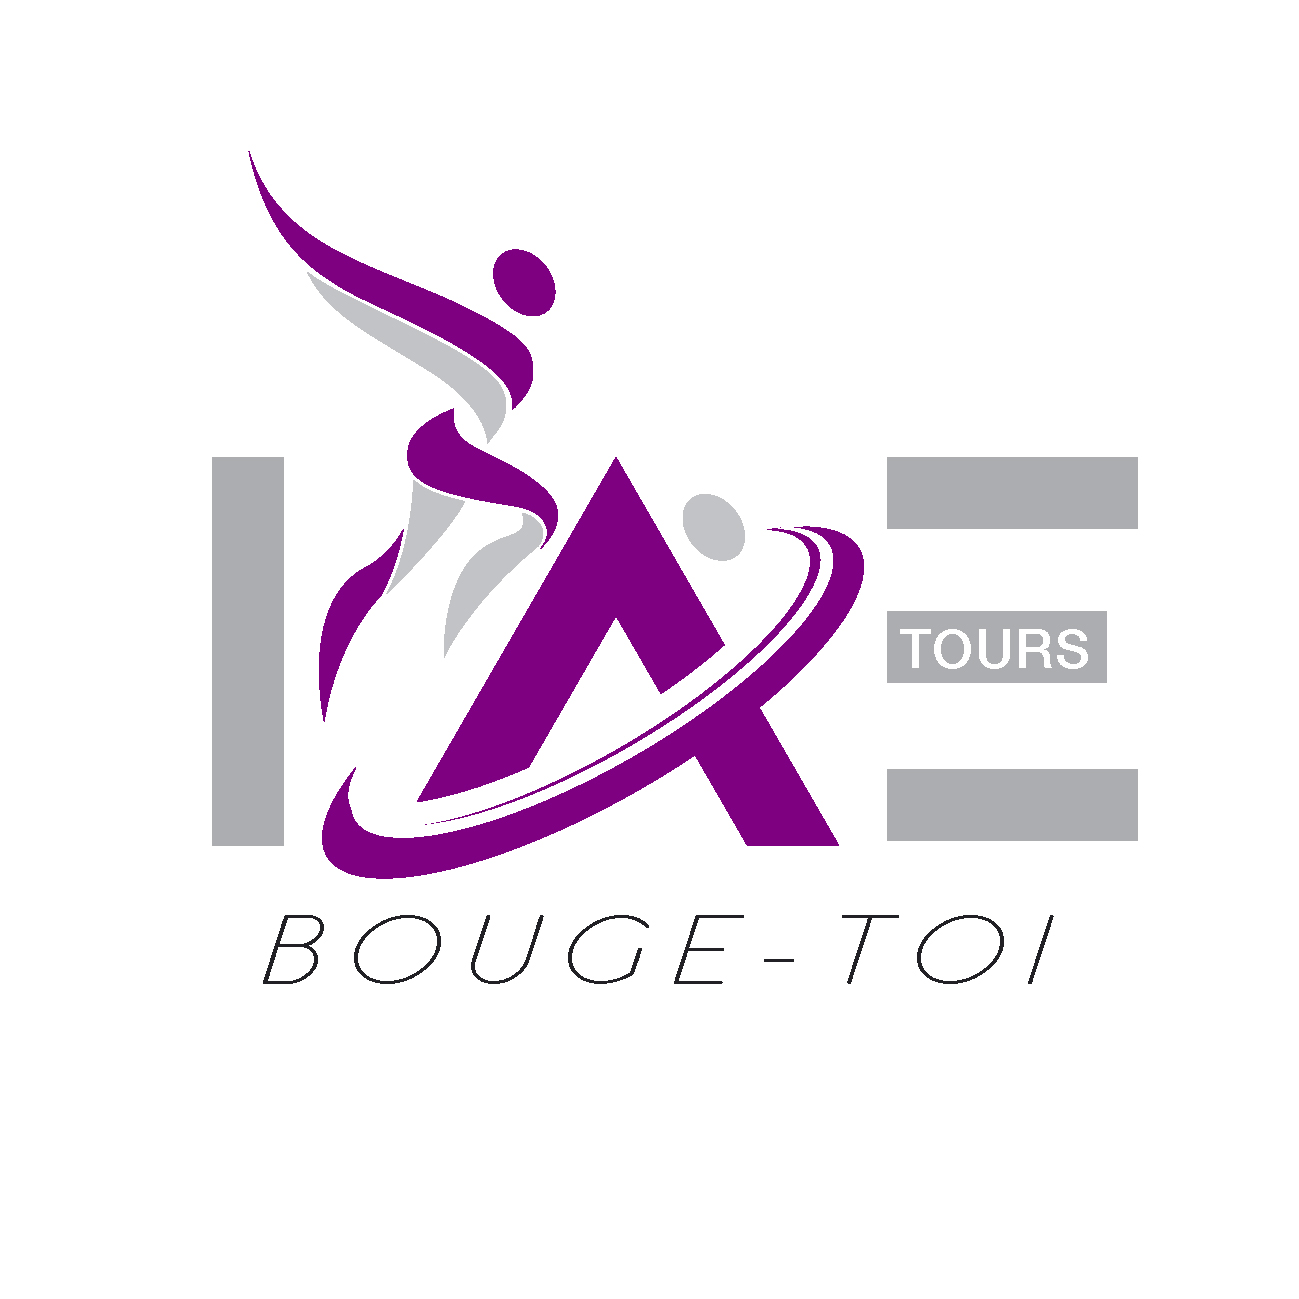 BOUGE-TOI